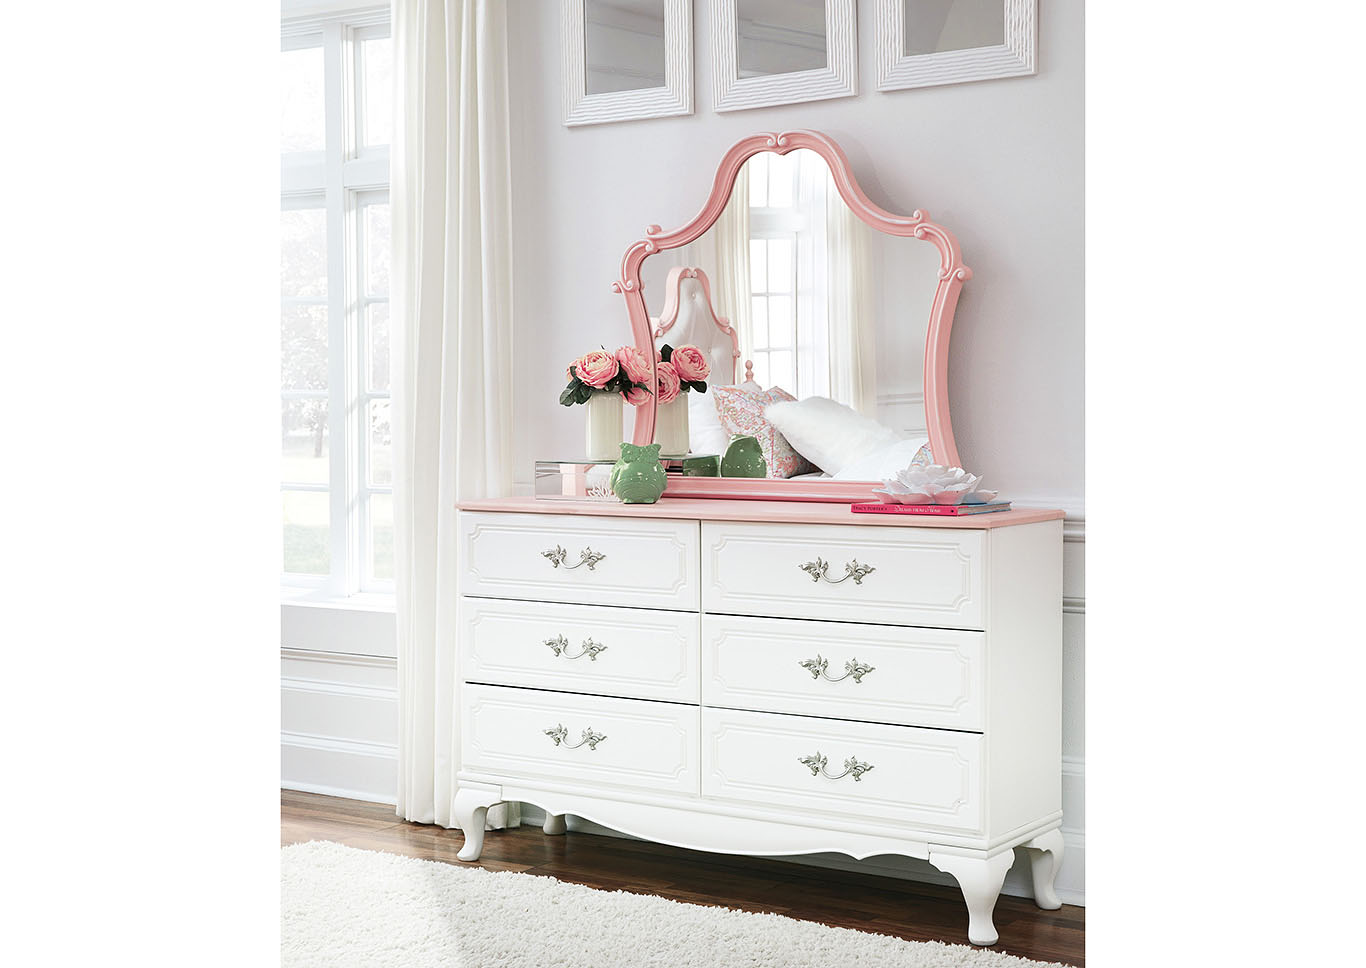 Laddi White/Pink Dresser w/Mirror,Signature Design By Ashley